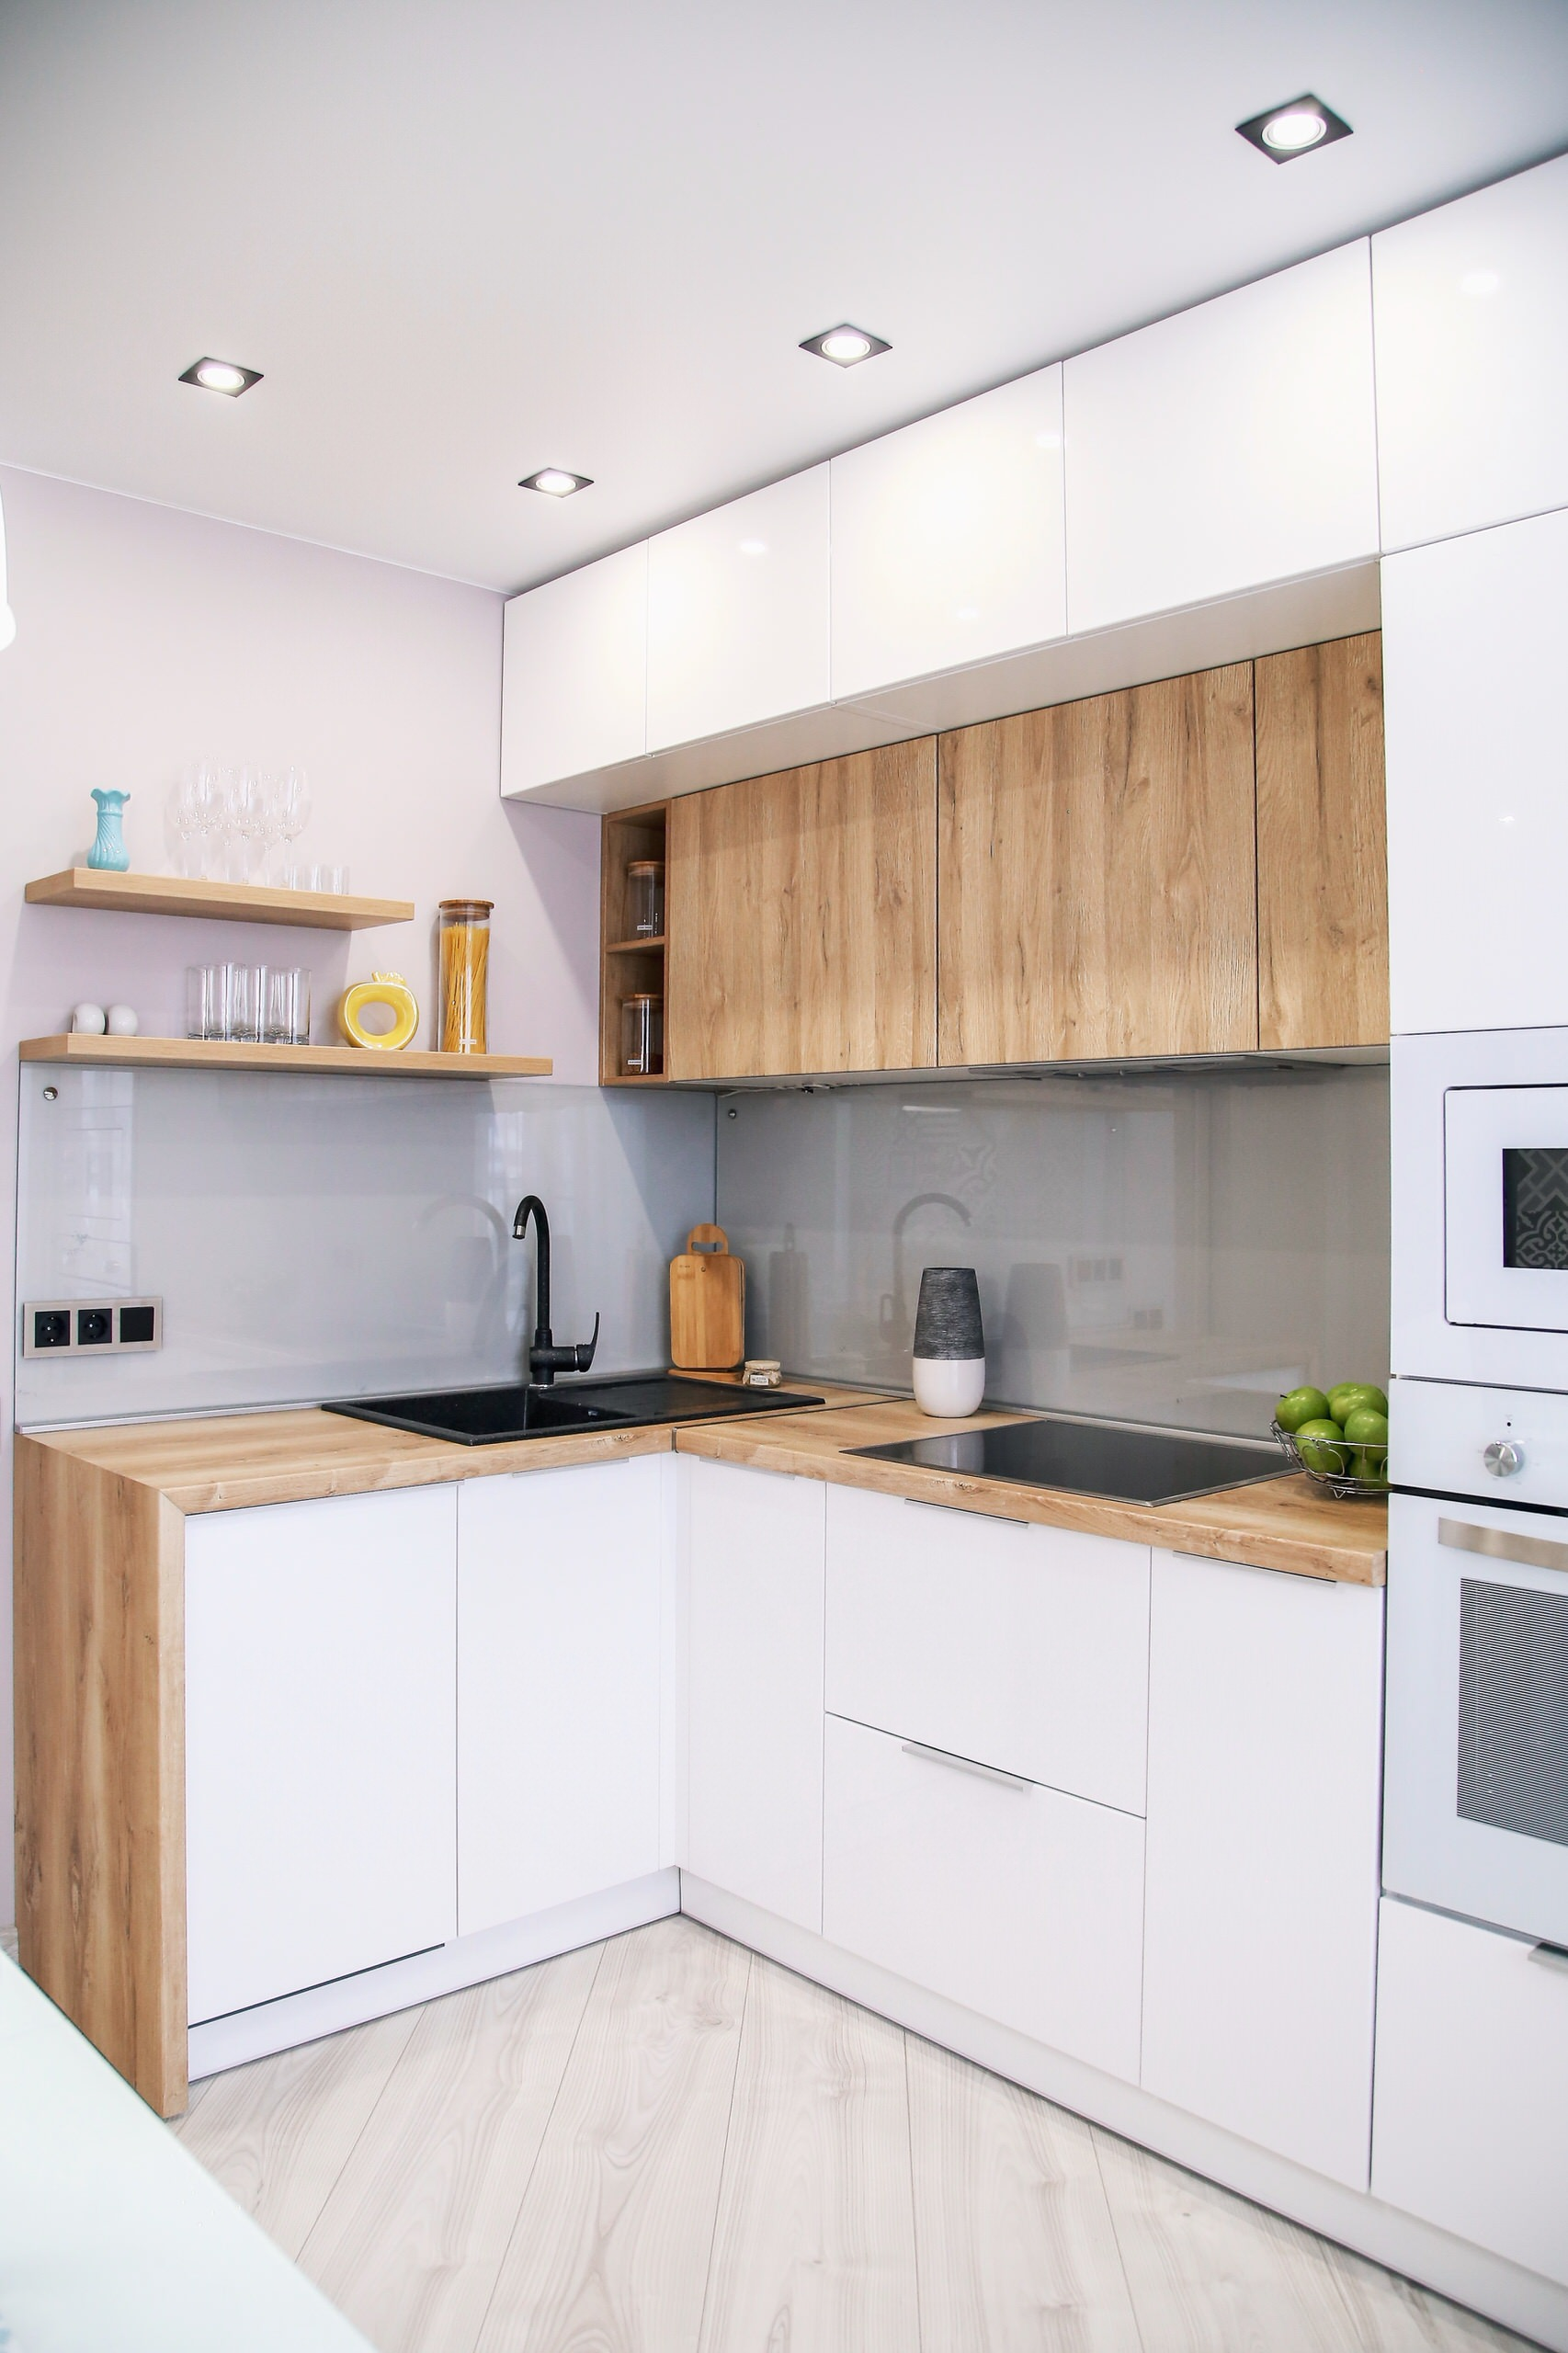 75 Beautiful Small L Shaped Kitchen Pictures Ideas November 2020 Houzz